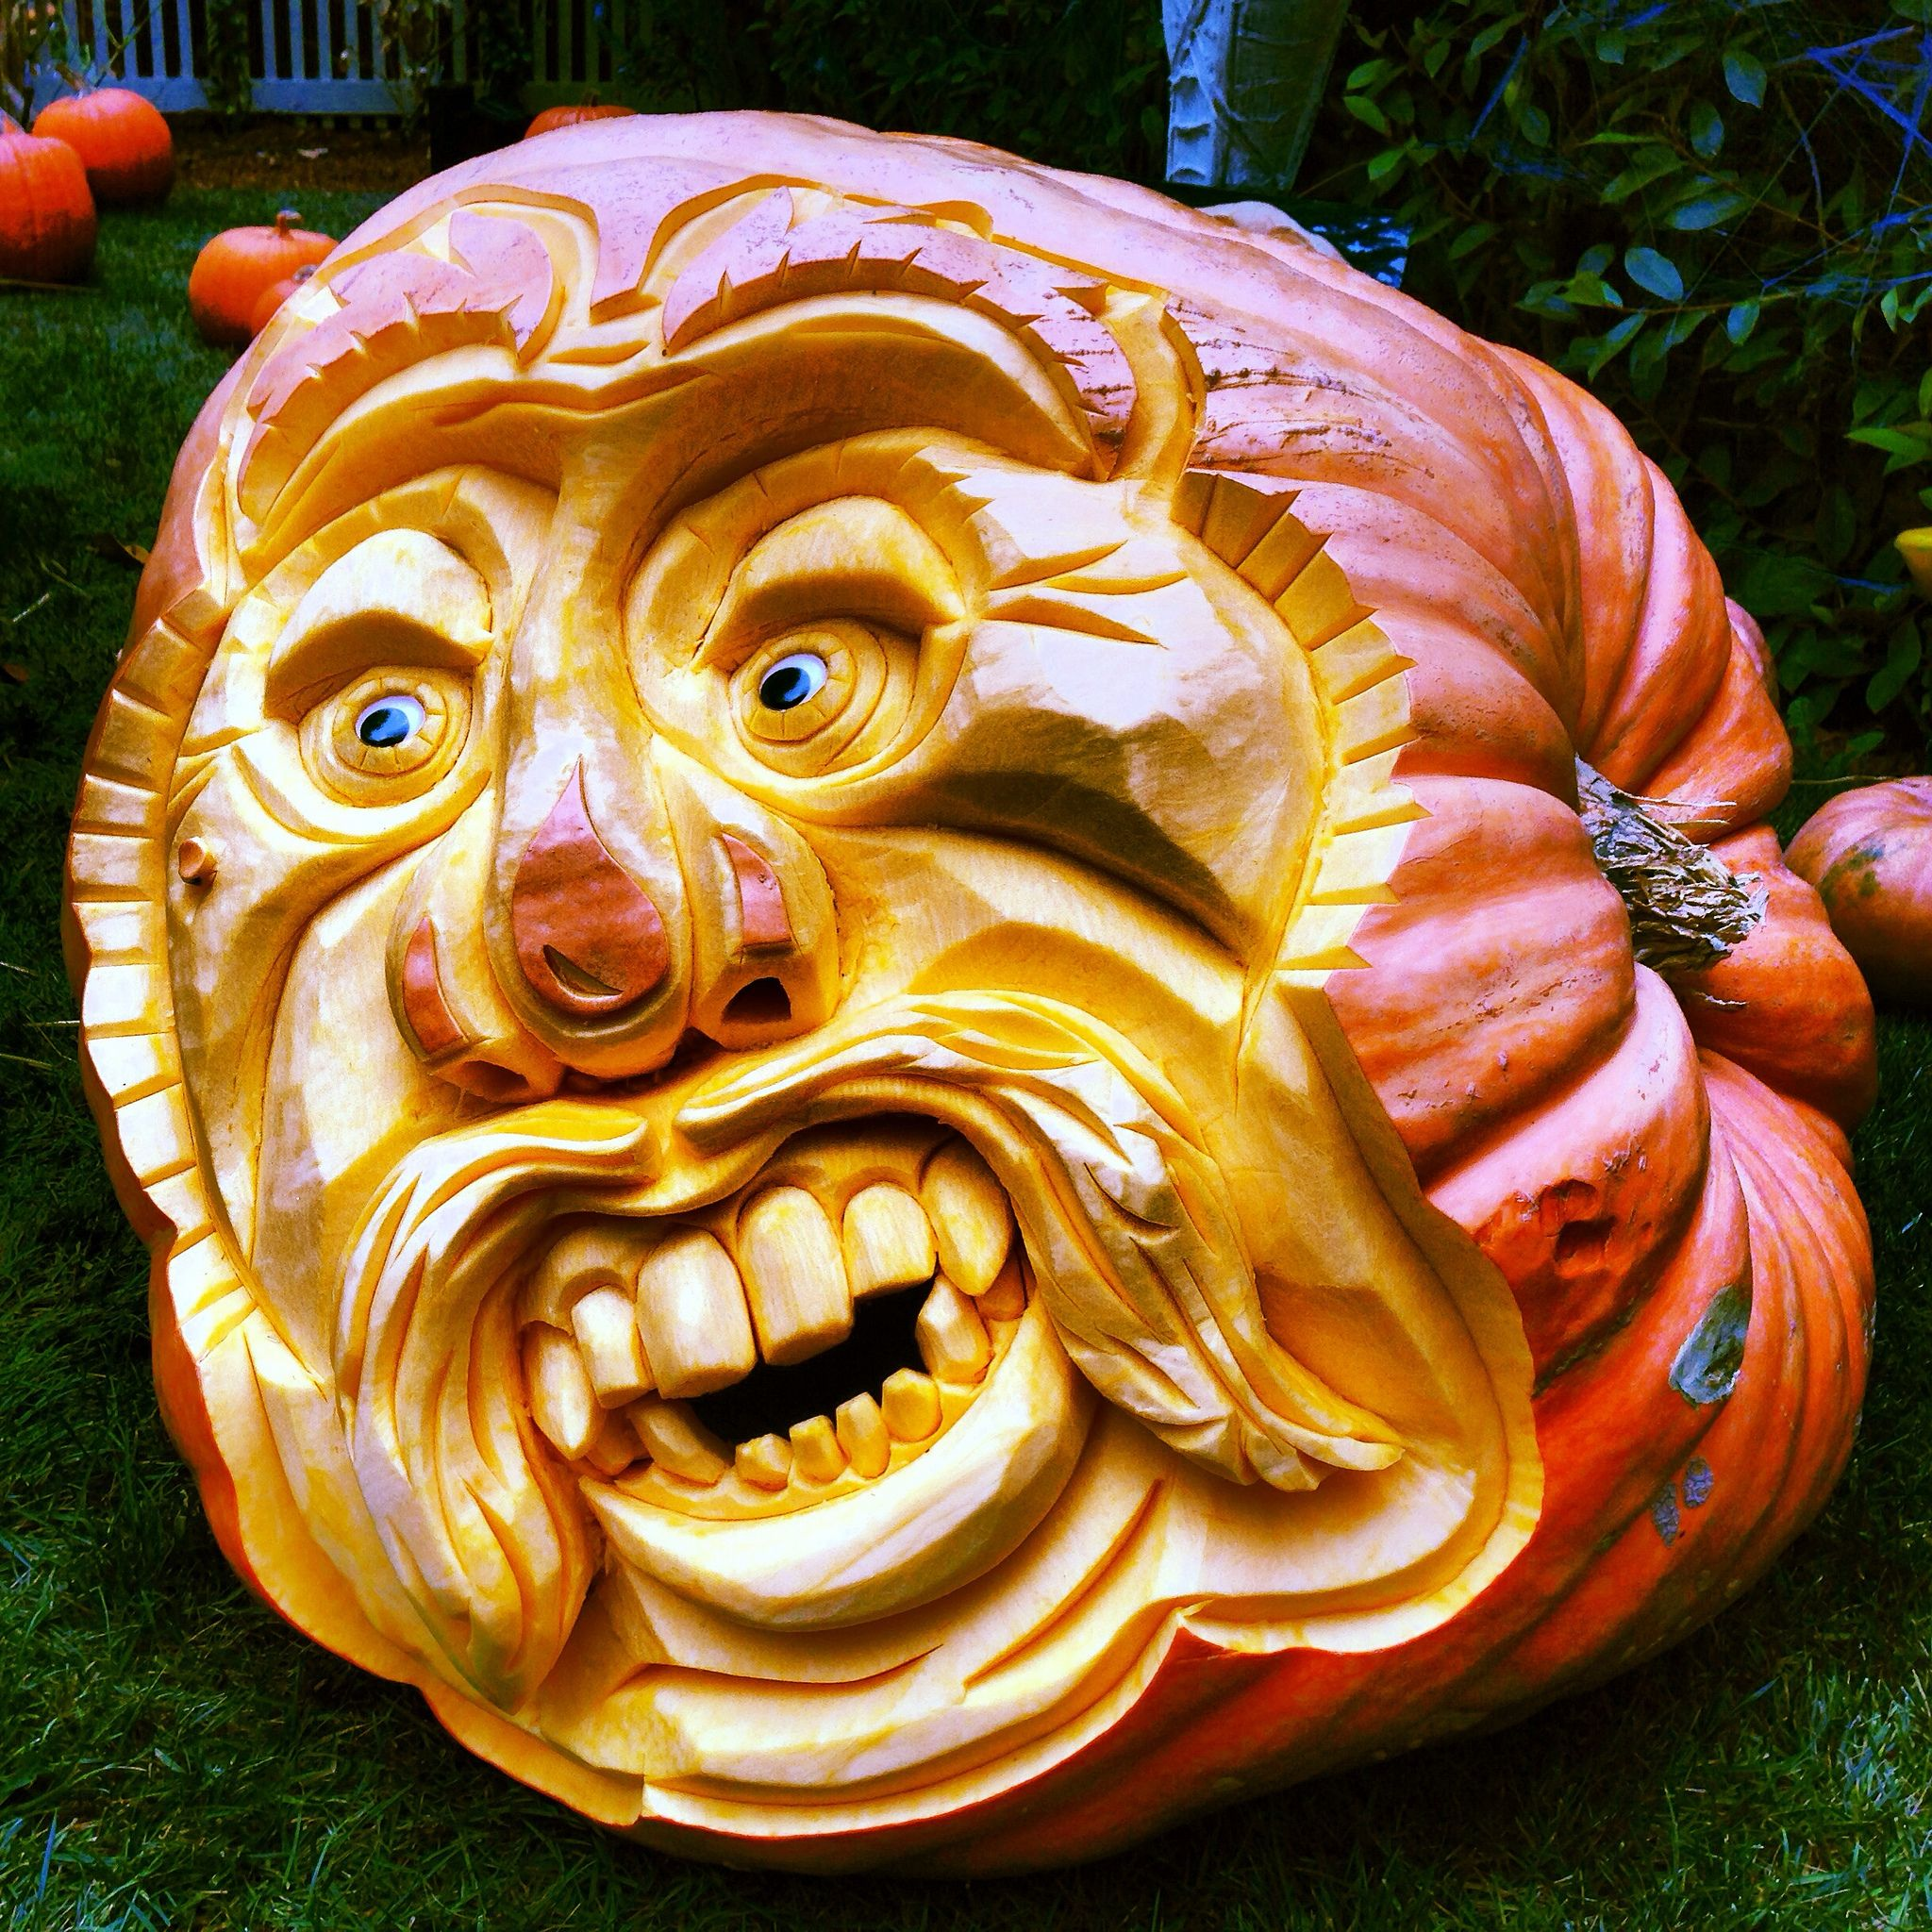 30+ Creative Halloween Pumpkin Carving Ideas - Awesome Jack-O ...